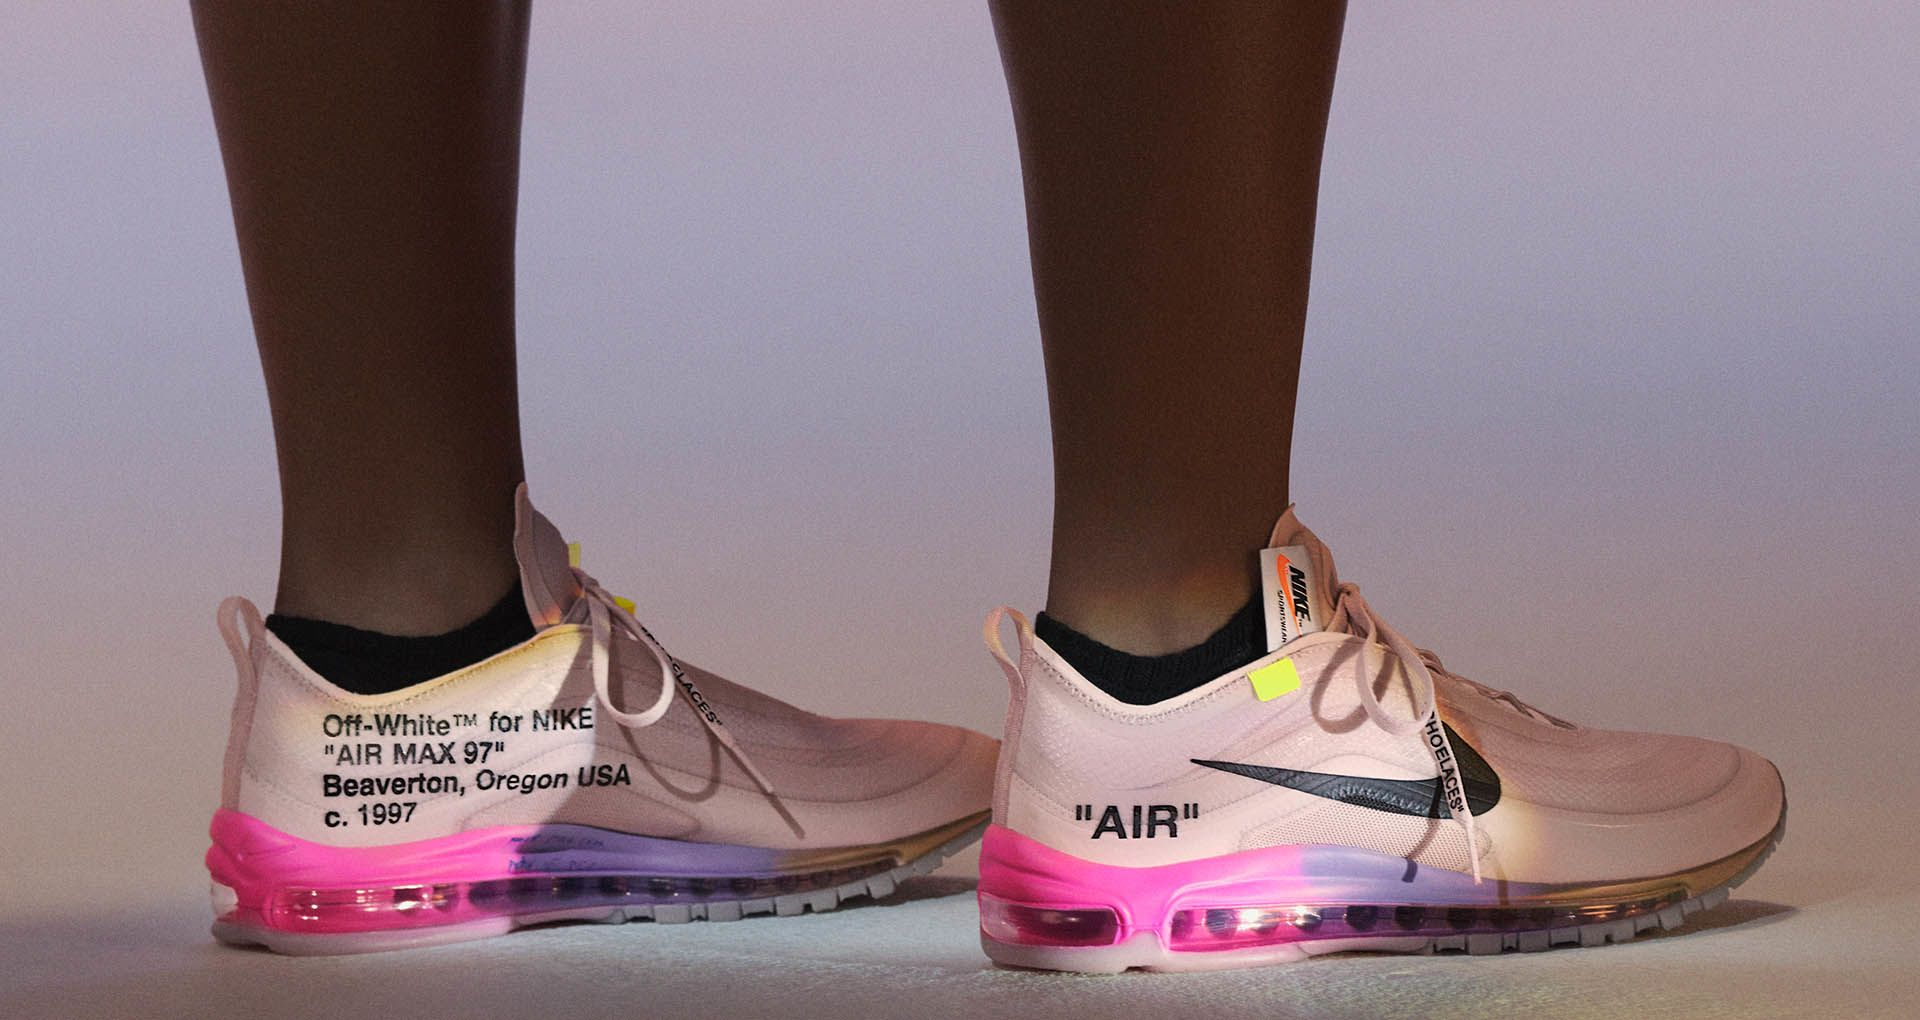 Nike x Virgil Abloh for Serena Williams: